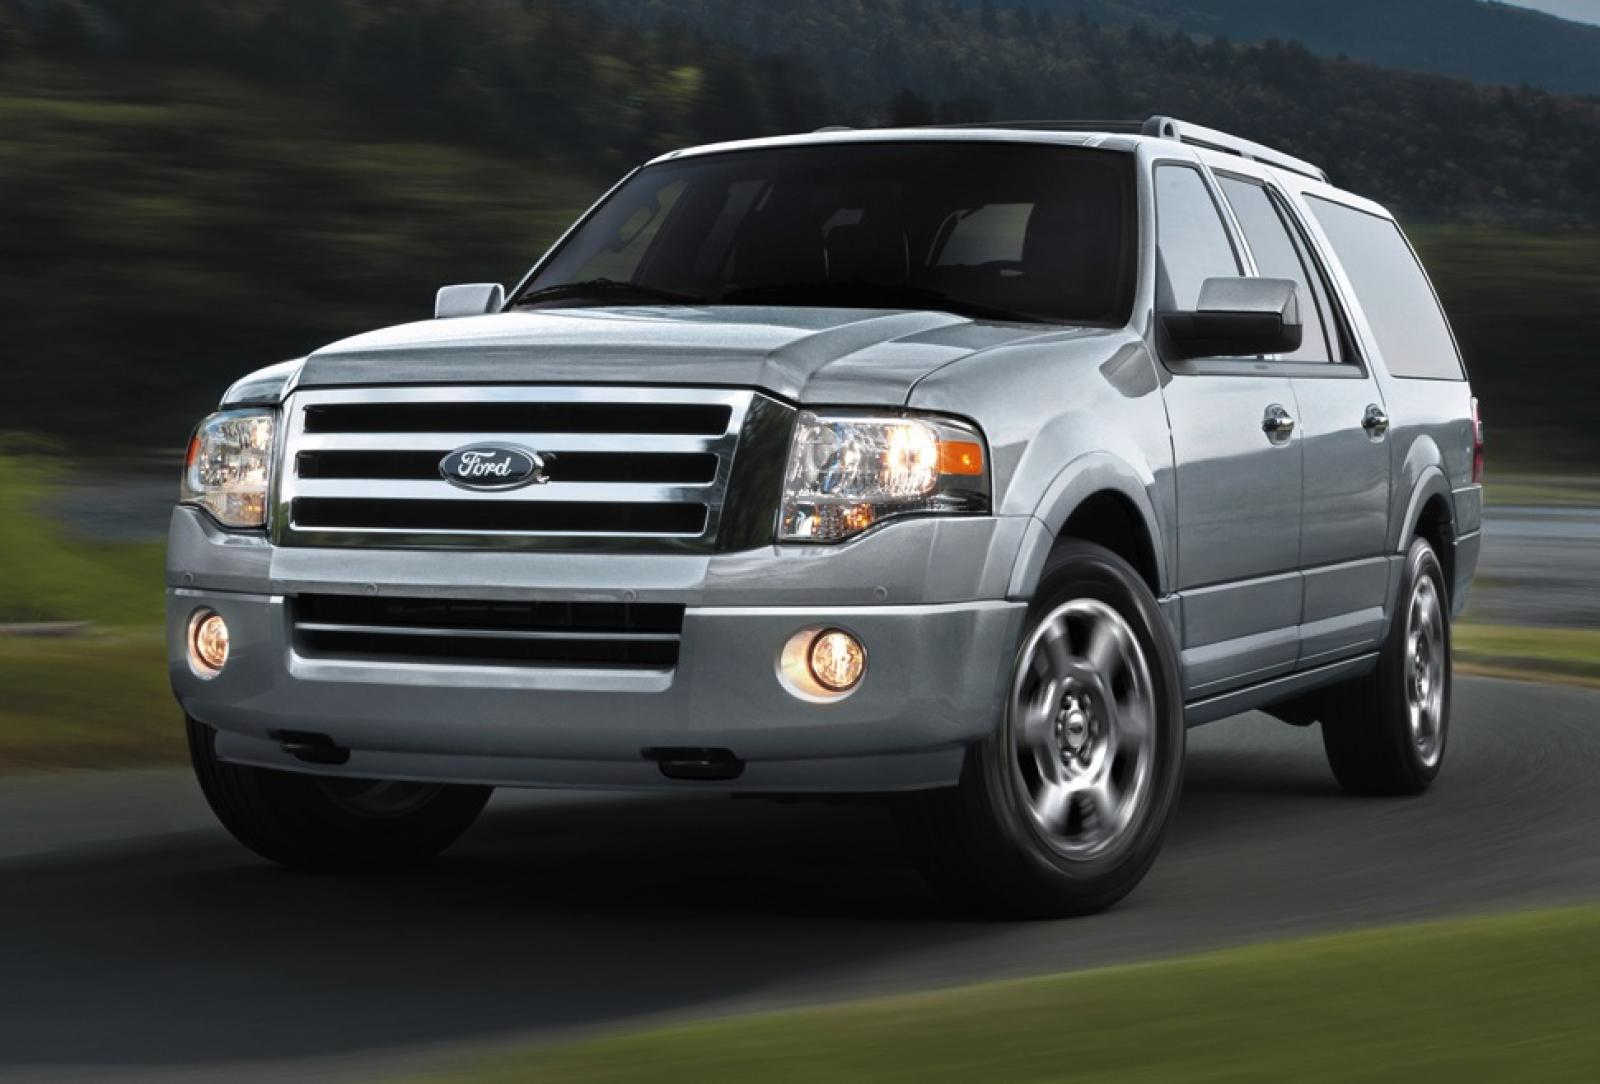 2014 ford expedition information and photos zombiedrive. Black Bedroom Furniture Sets. Home Design Ideas